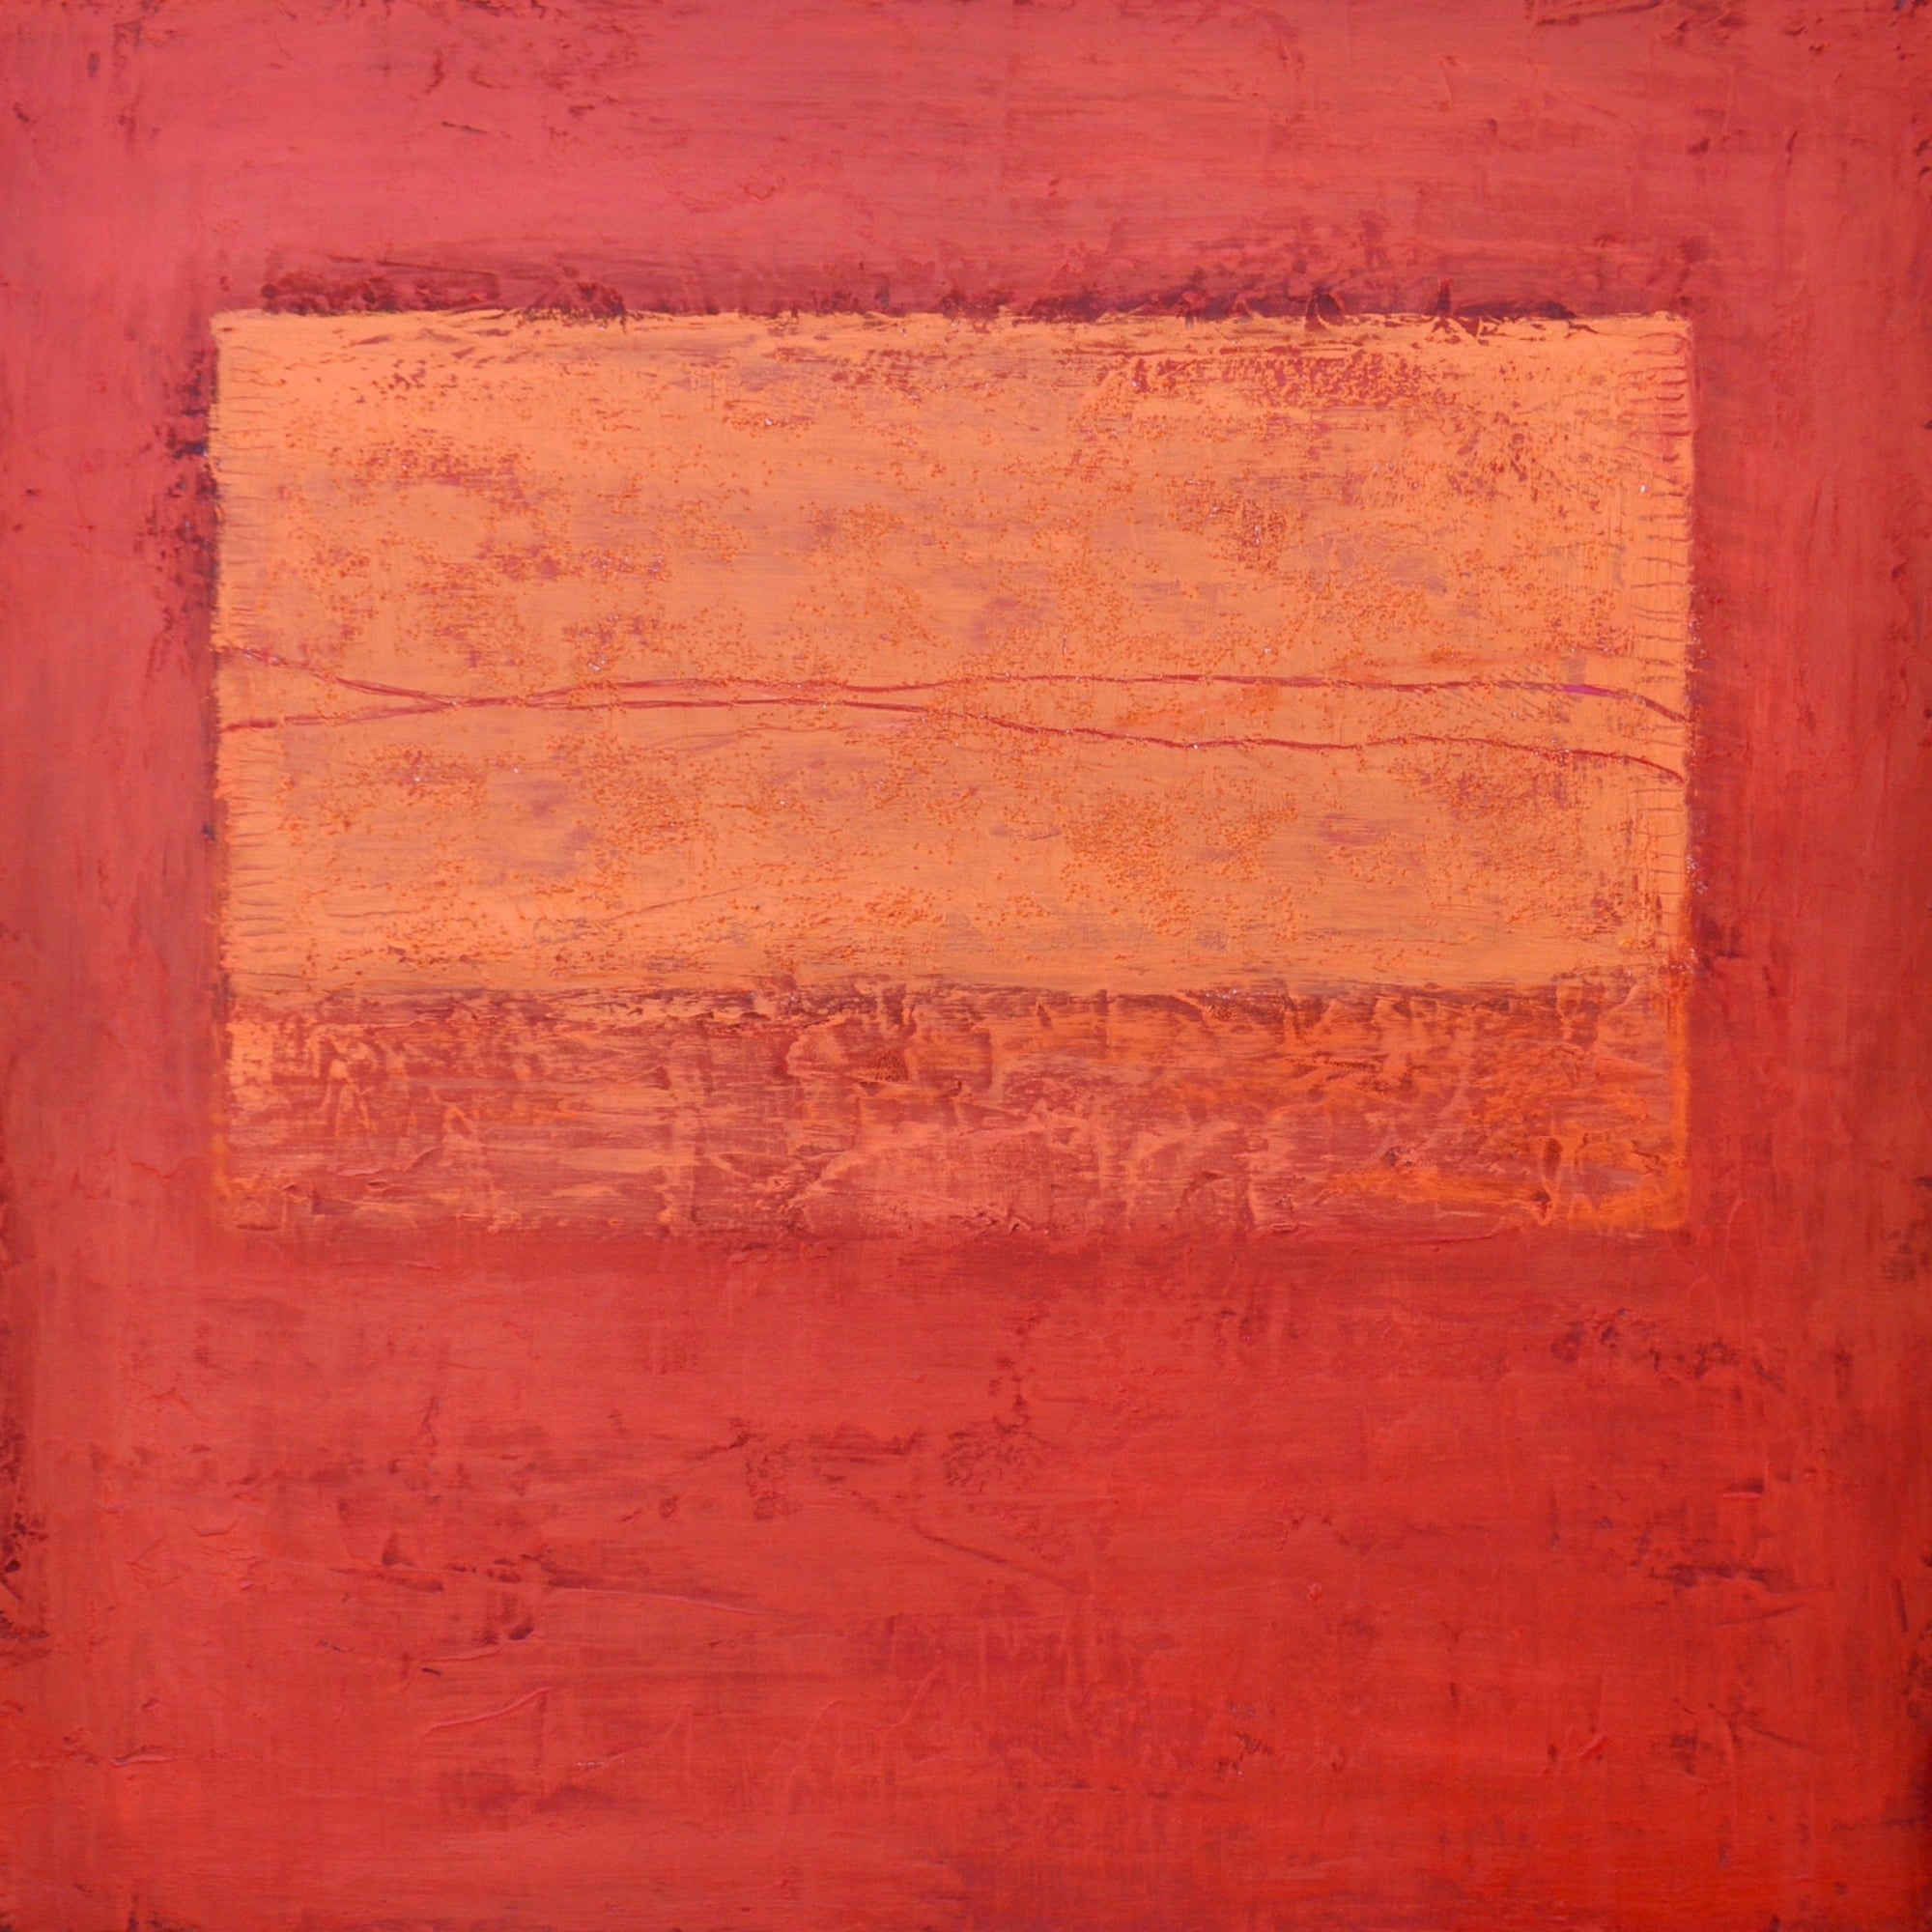 """Orange Cloud Descending"" by Peggy Hinaekian 